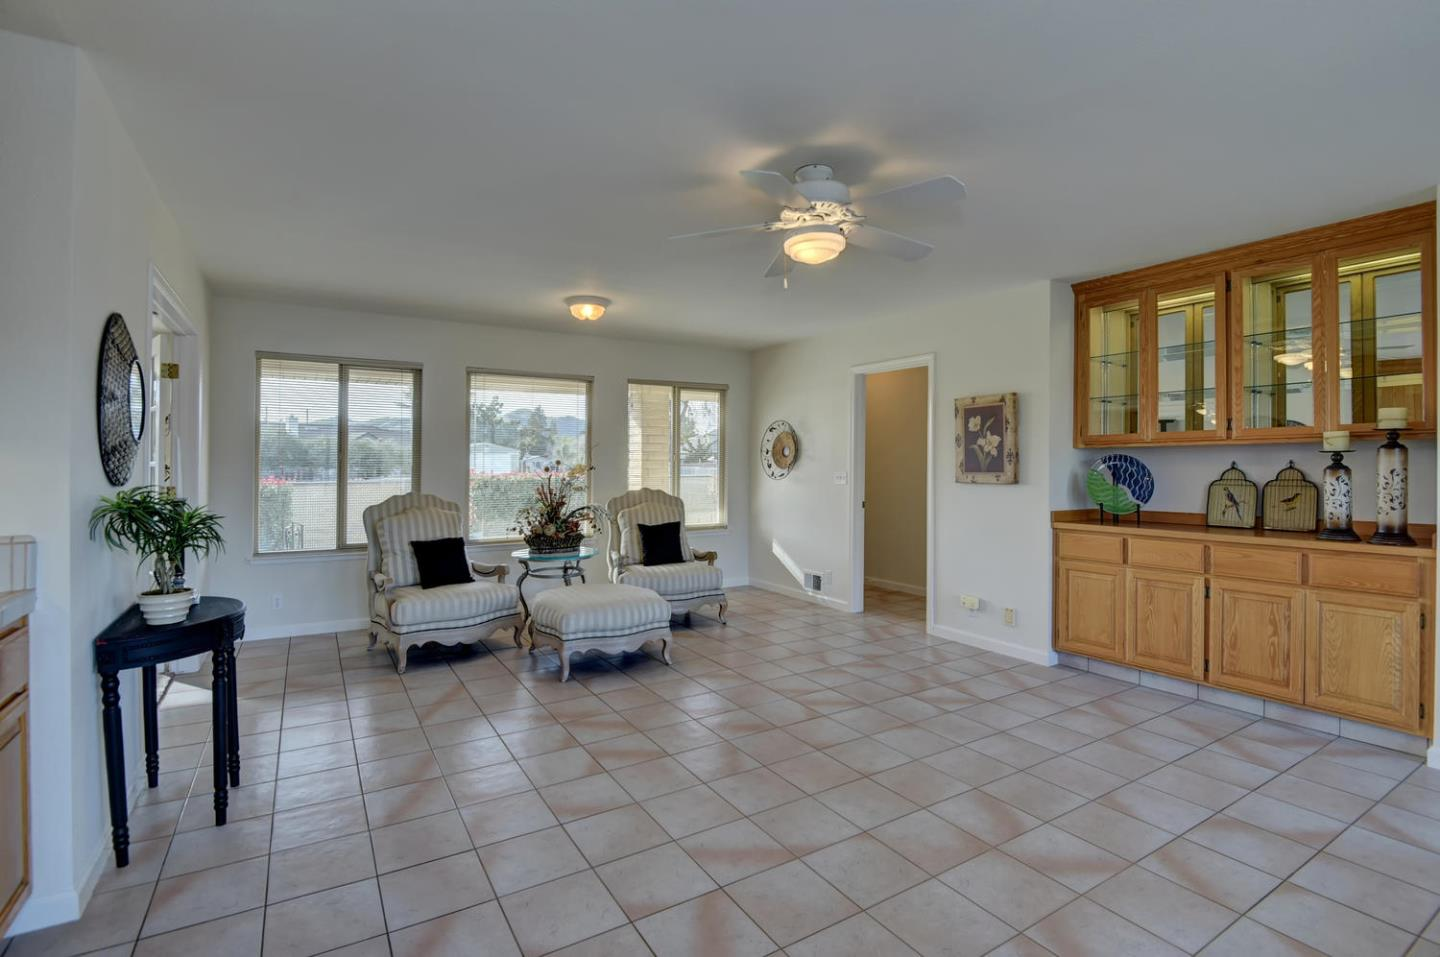 Additional photo for property listing at 11385 Rothe Dr  GILROY, CALIFORNIA 95020